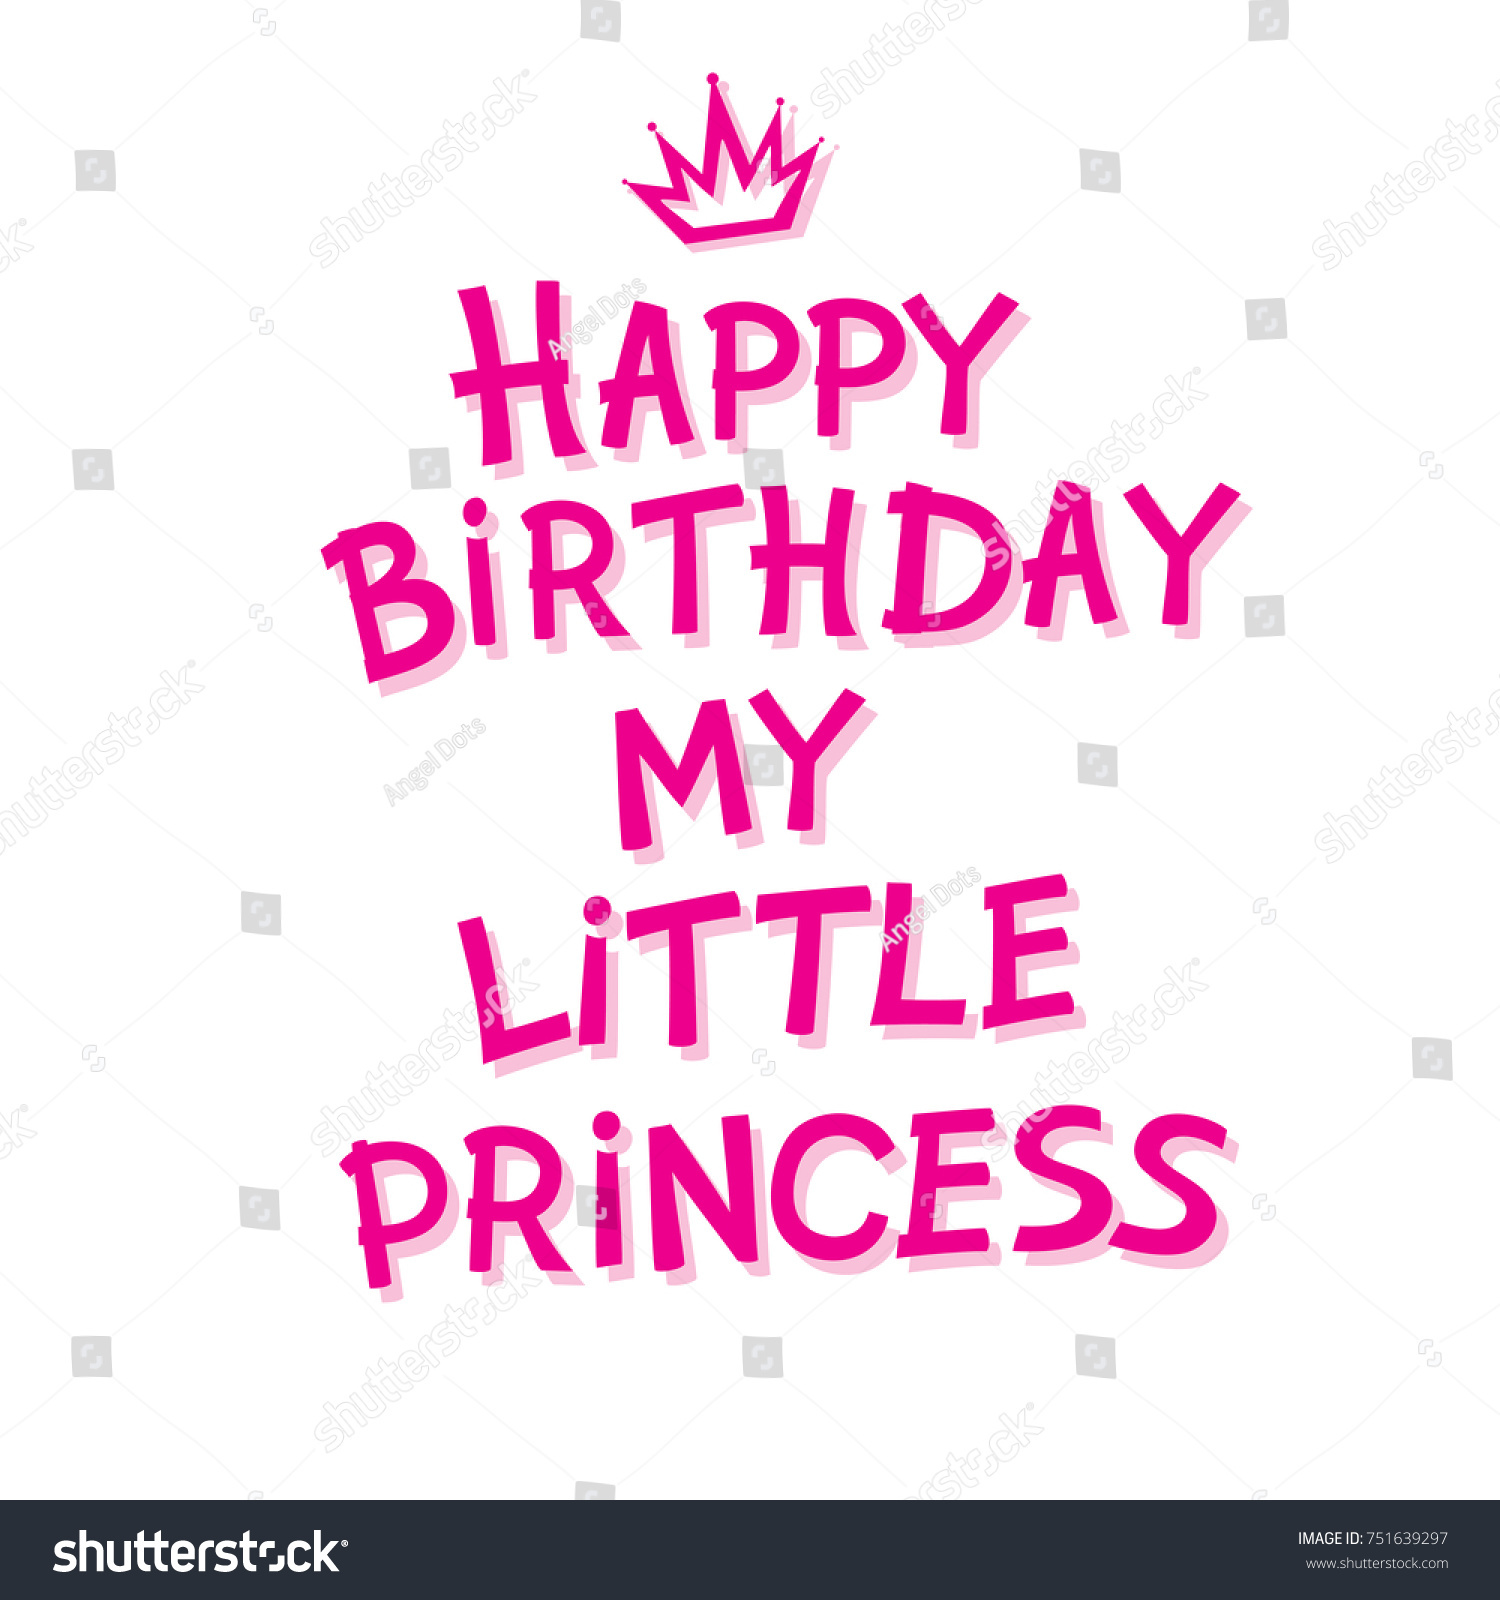 happy birthday my little princess ; stock-vector-happy-birthday-my-little-princess-hand-lettering-happy-birthday-for-postcard-or-celebration-design-751639297